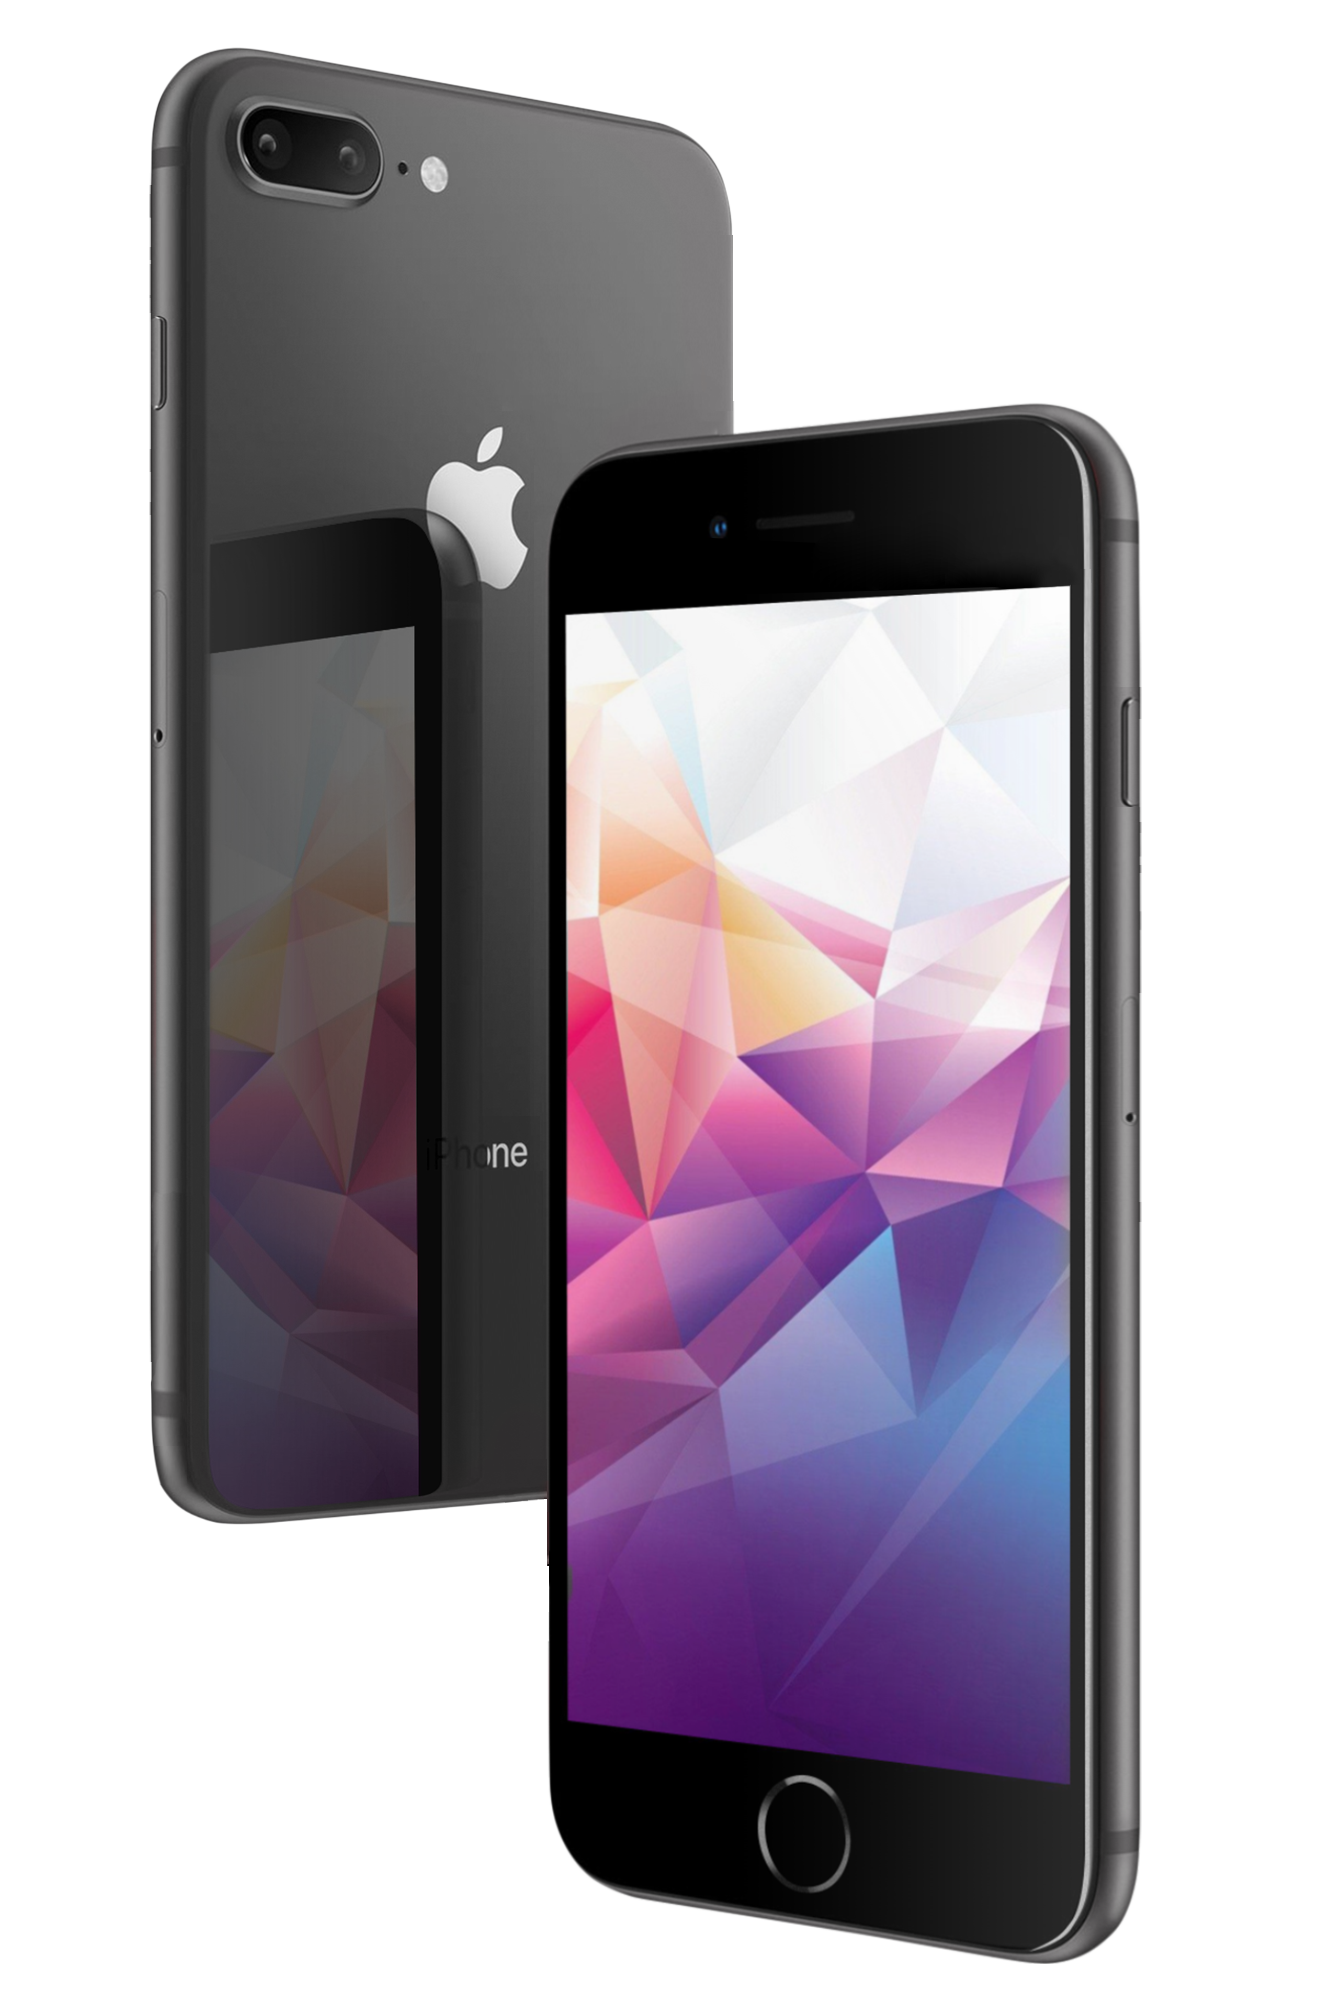 Image of iPhone 8